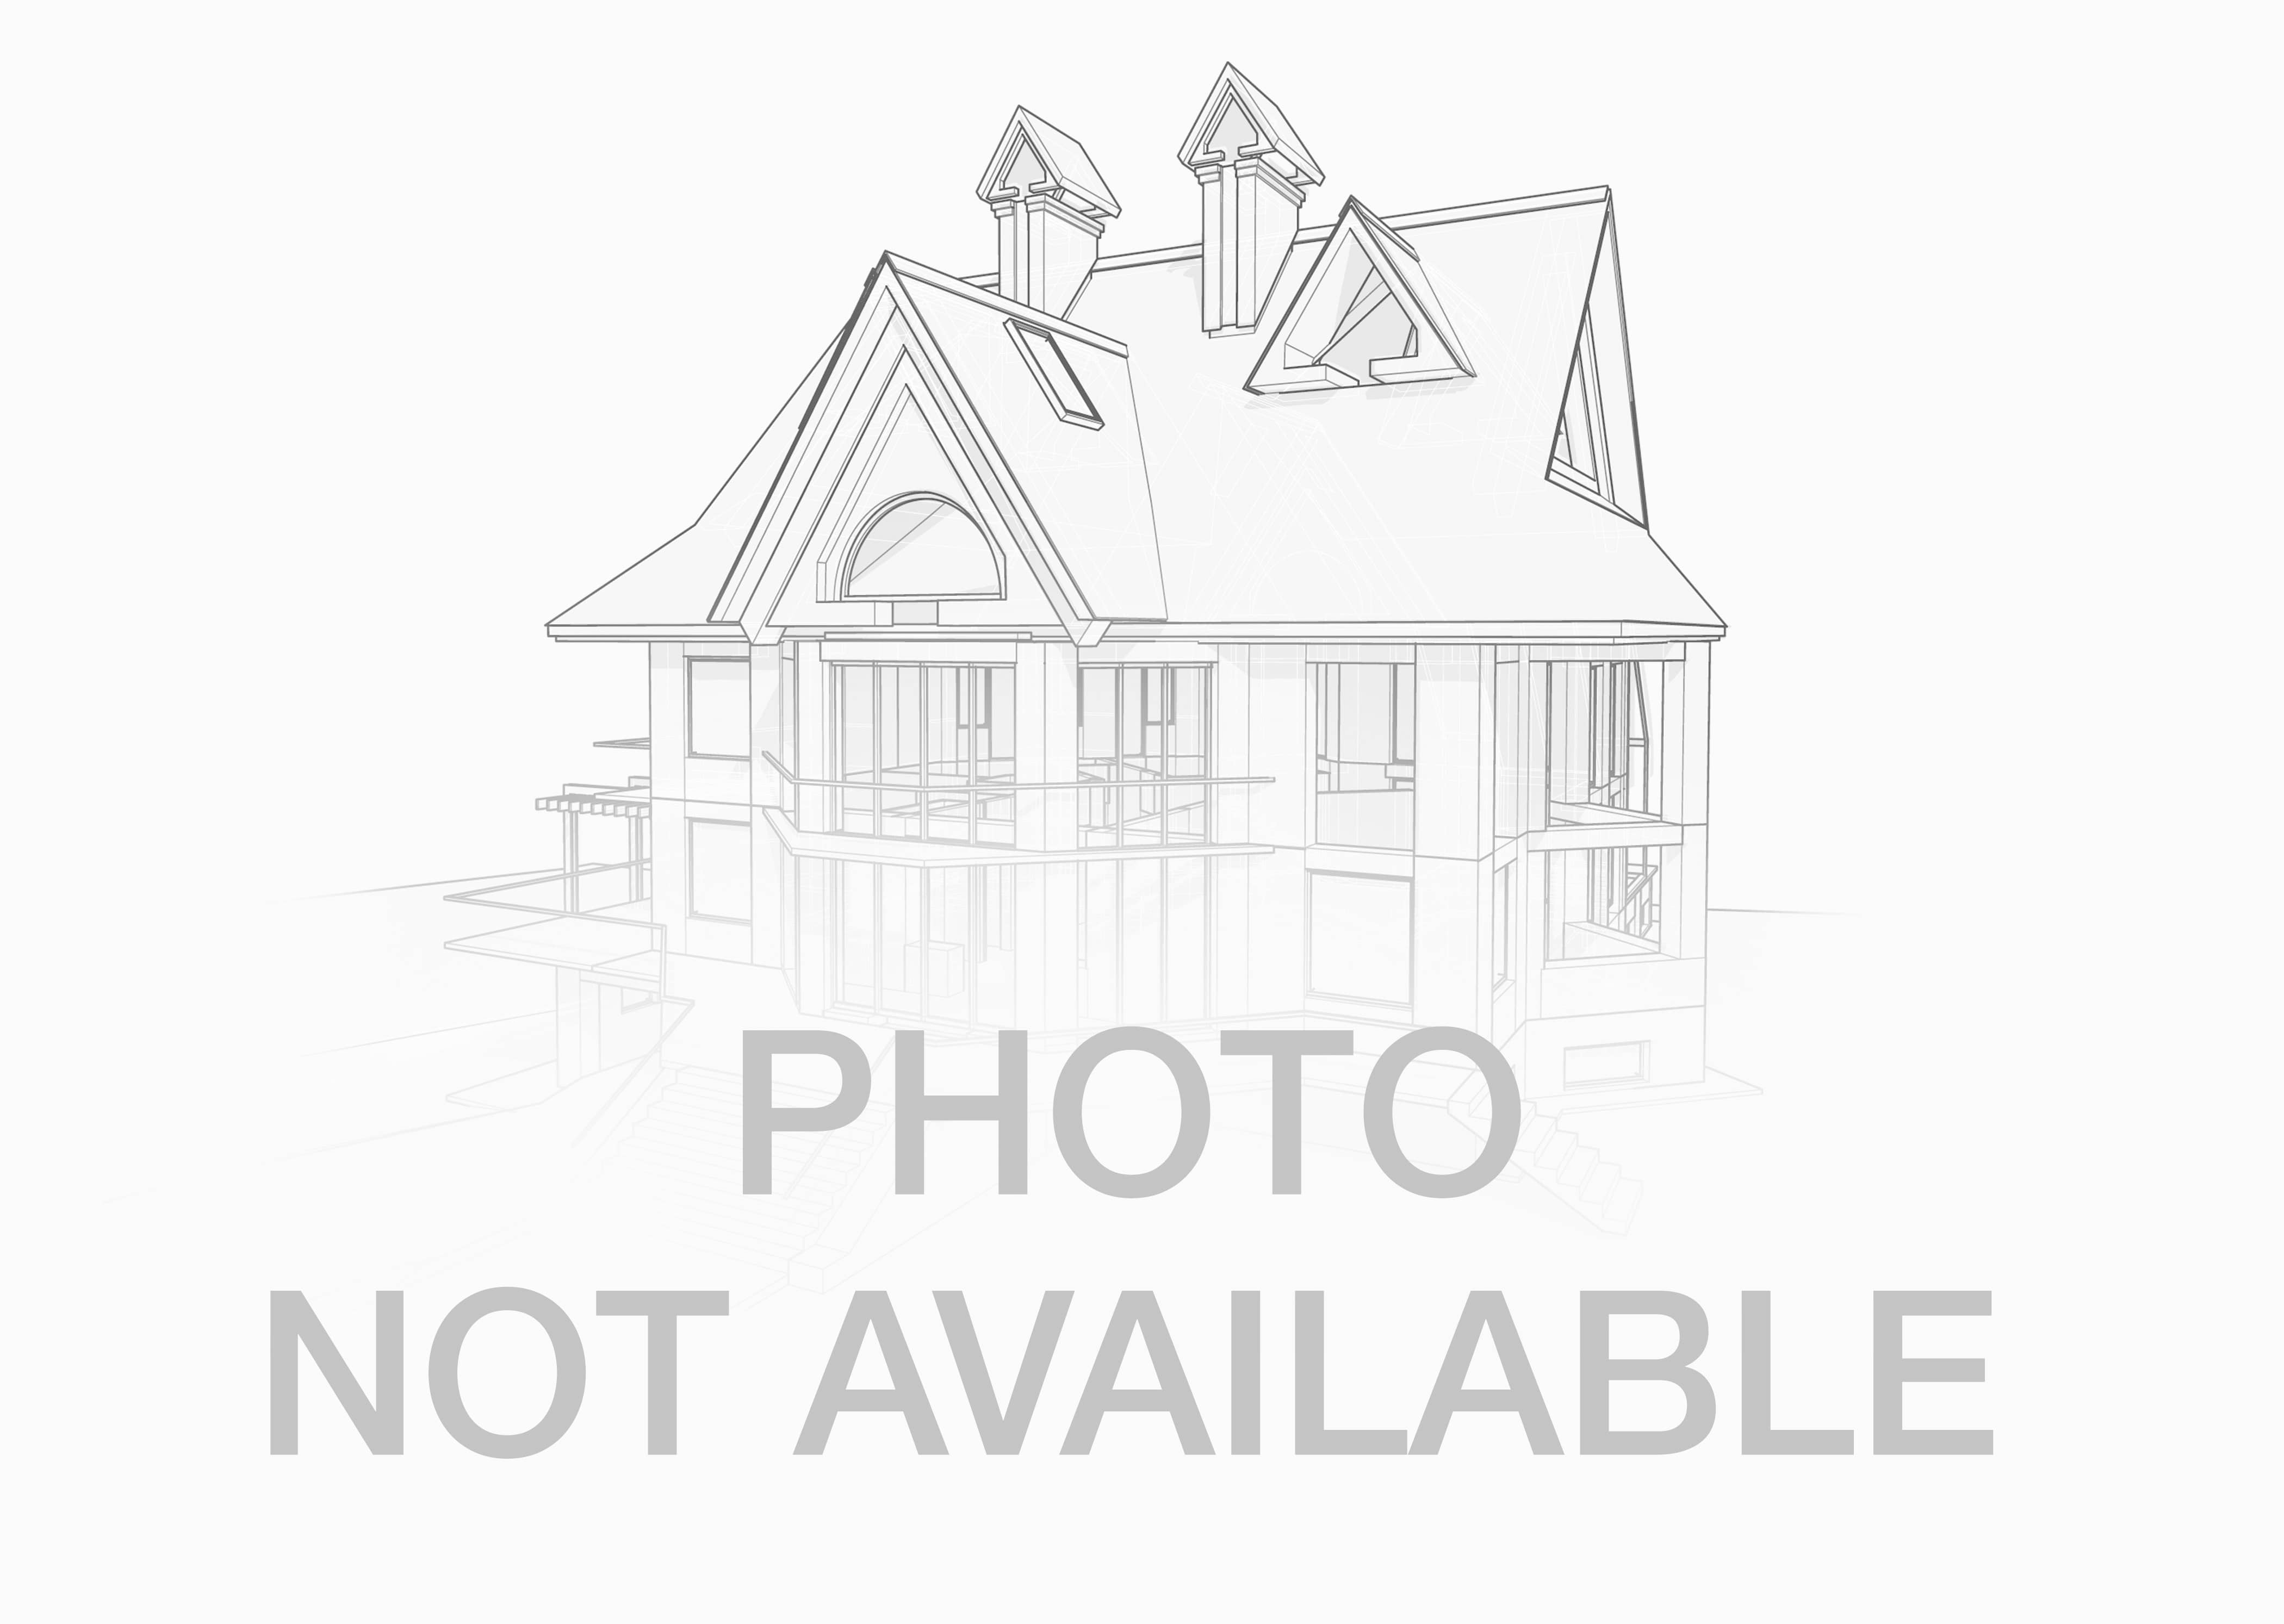 8942 Nc 39 Highway, Louisburg, NC 27549 - MLS ID 2326245 - Coldwell Banker  Howard Perry and Walston